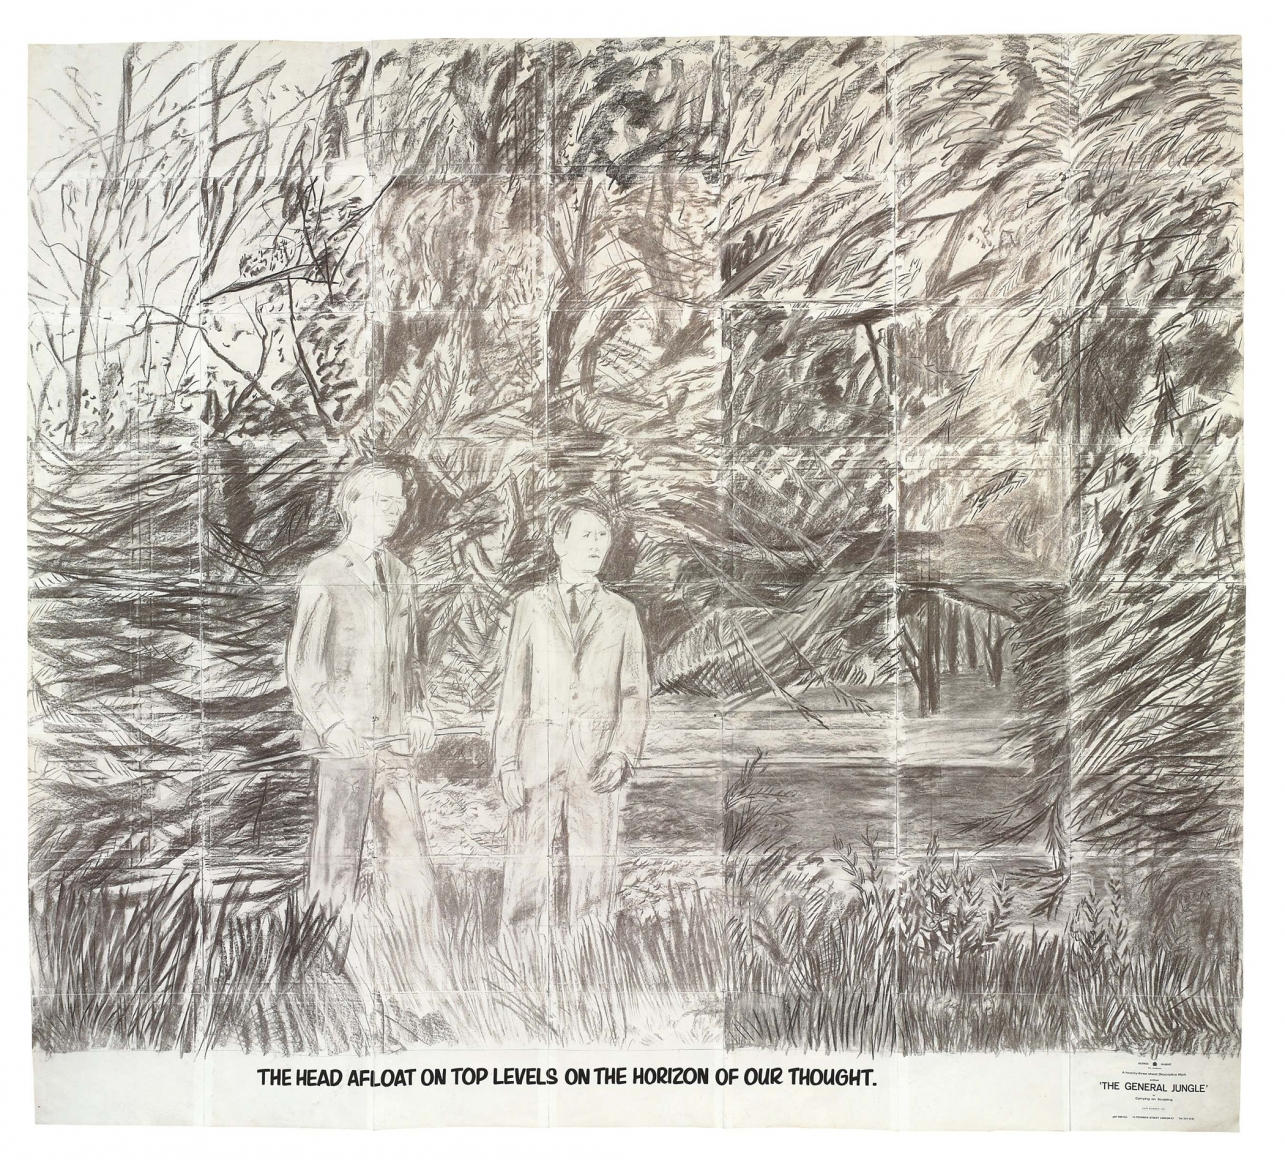 GILBERT & GEORGE, THE HEAD AFLOAT ON TOP LEVELS ON THE HORIZON OF OUR THOUGHTS, (from the series The General Jungleor Carrying on Sculpting), 1971